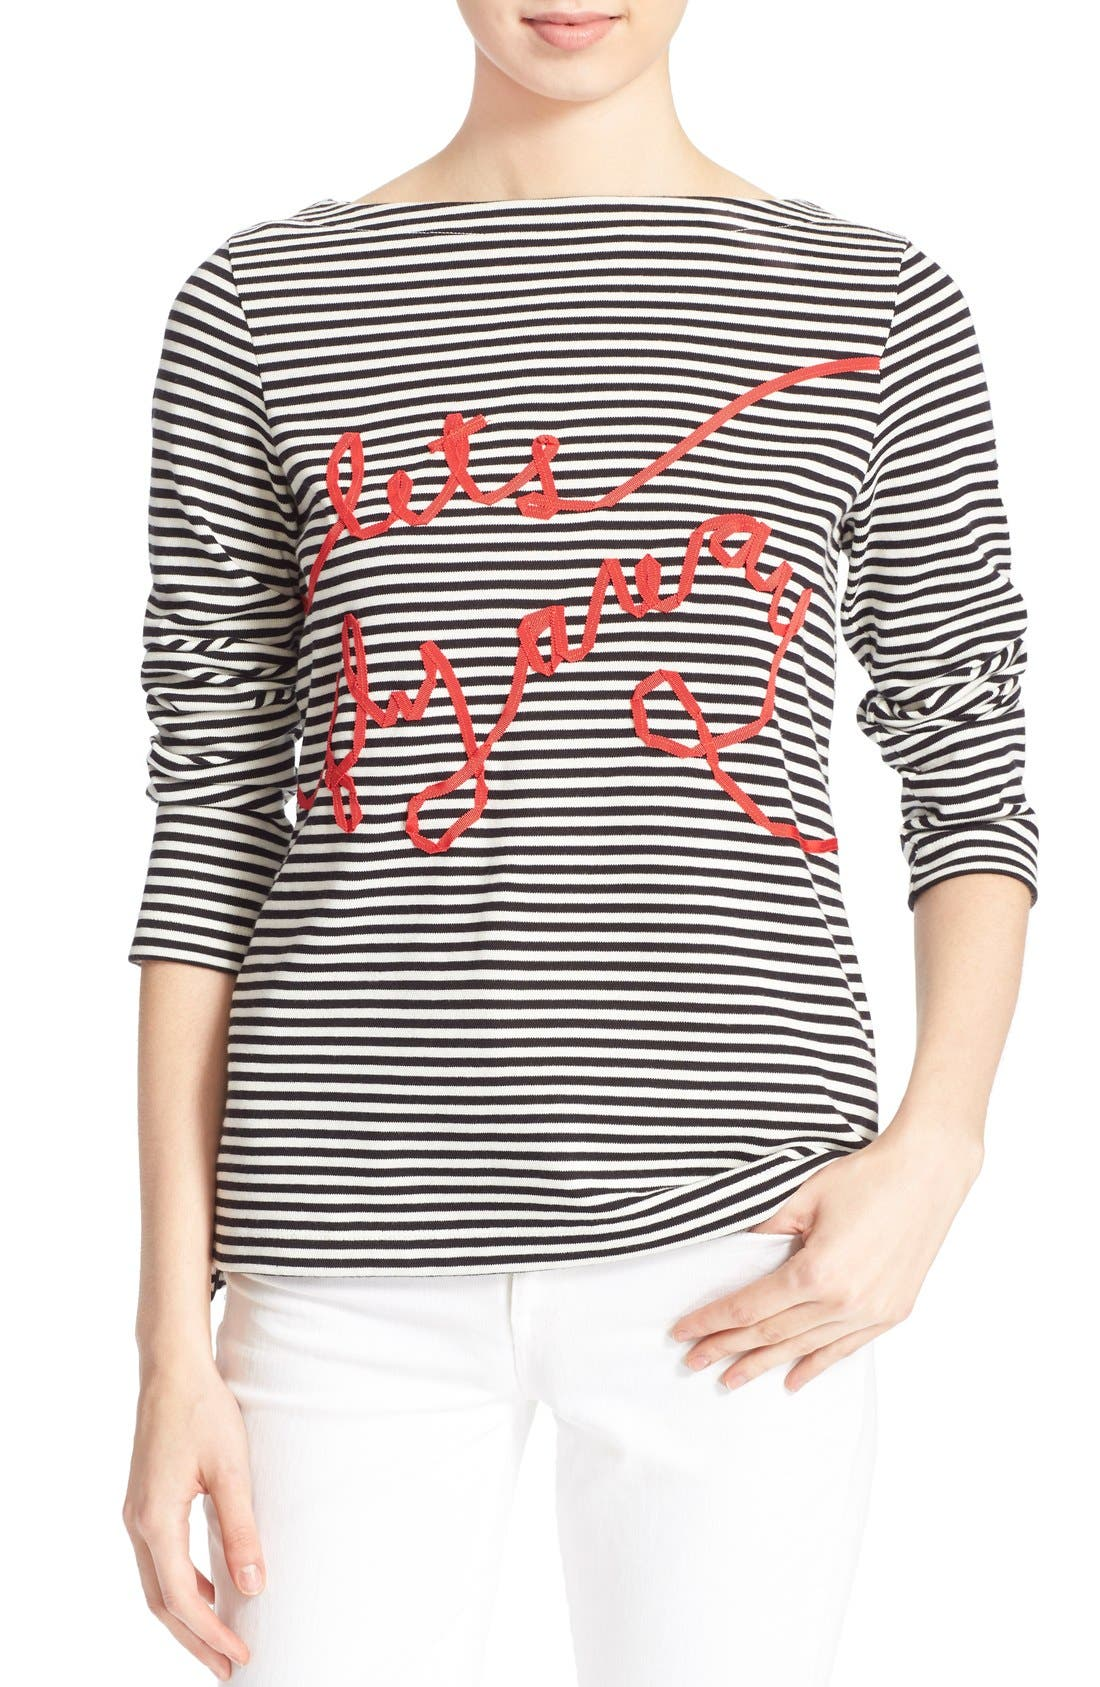 Main Image - kate spade new york 'let's fly away' embellished stripe tee